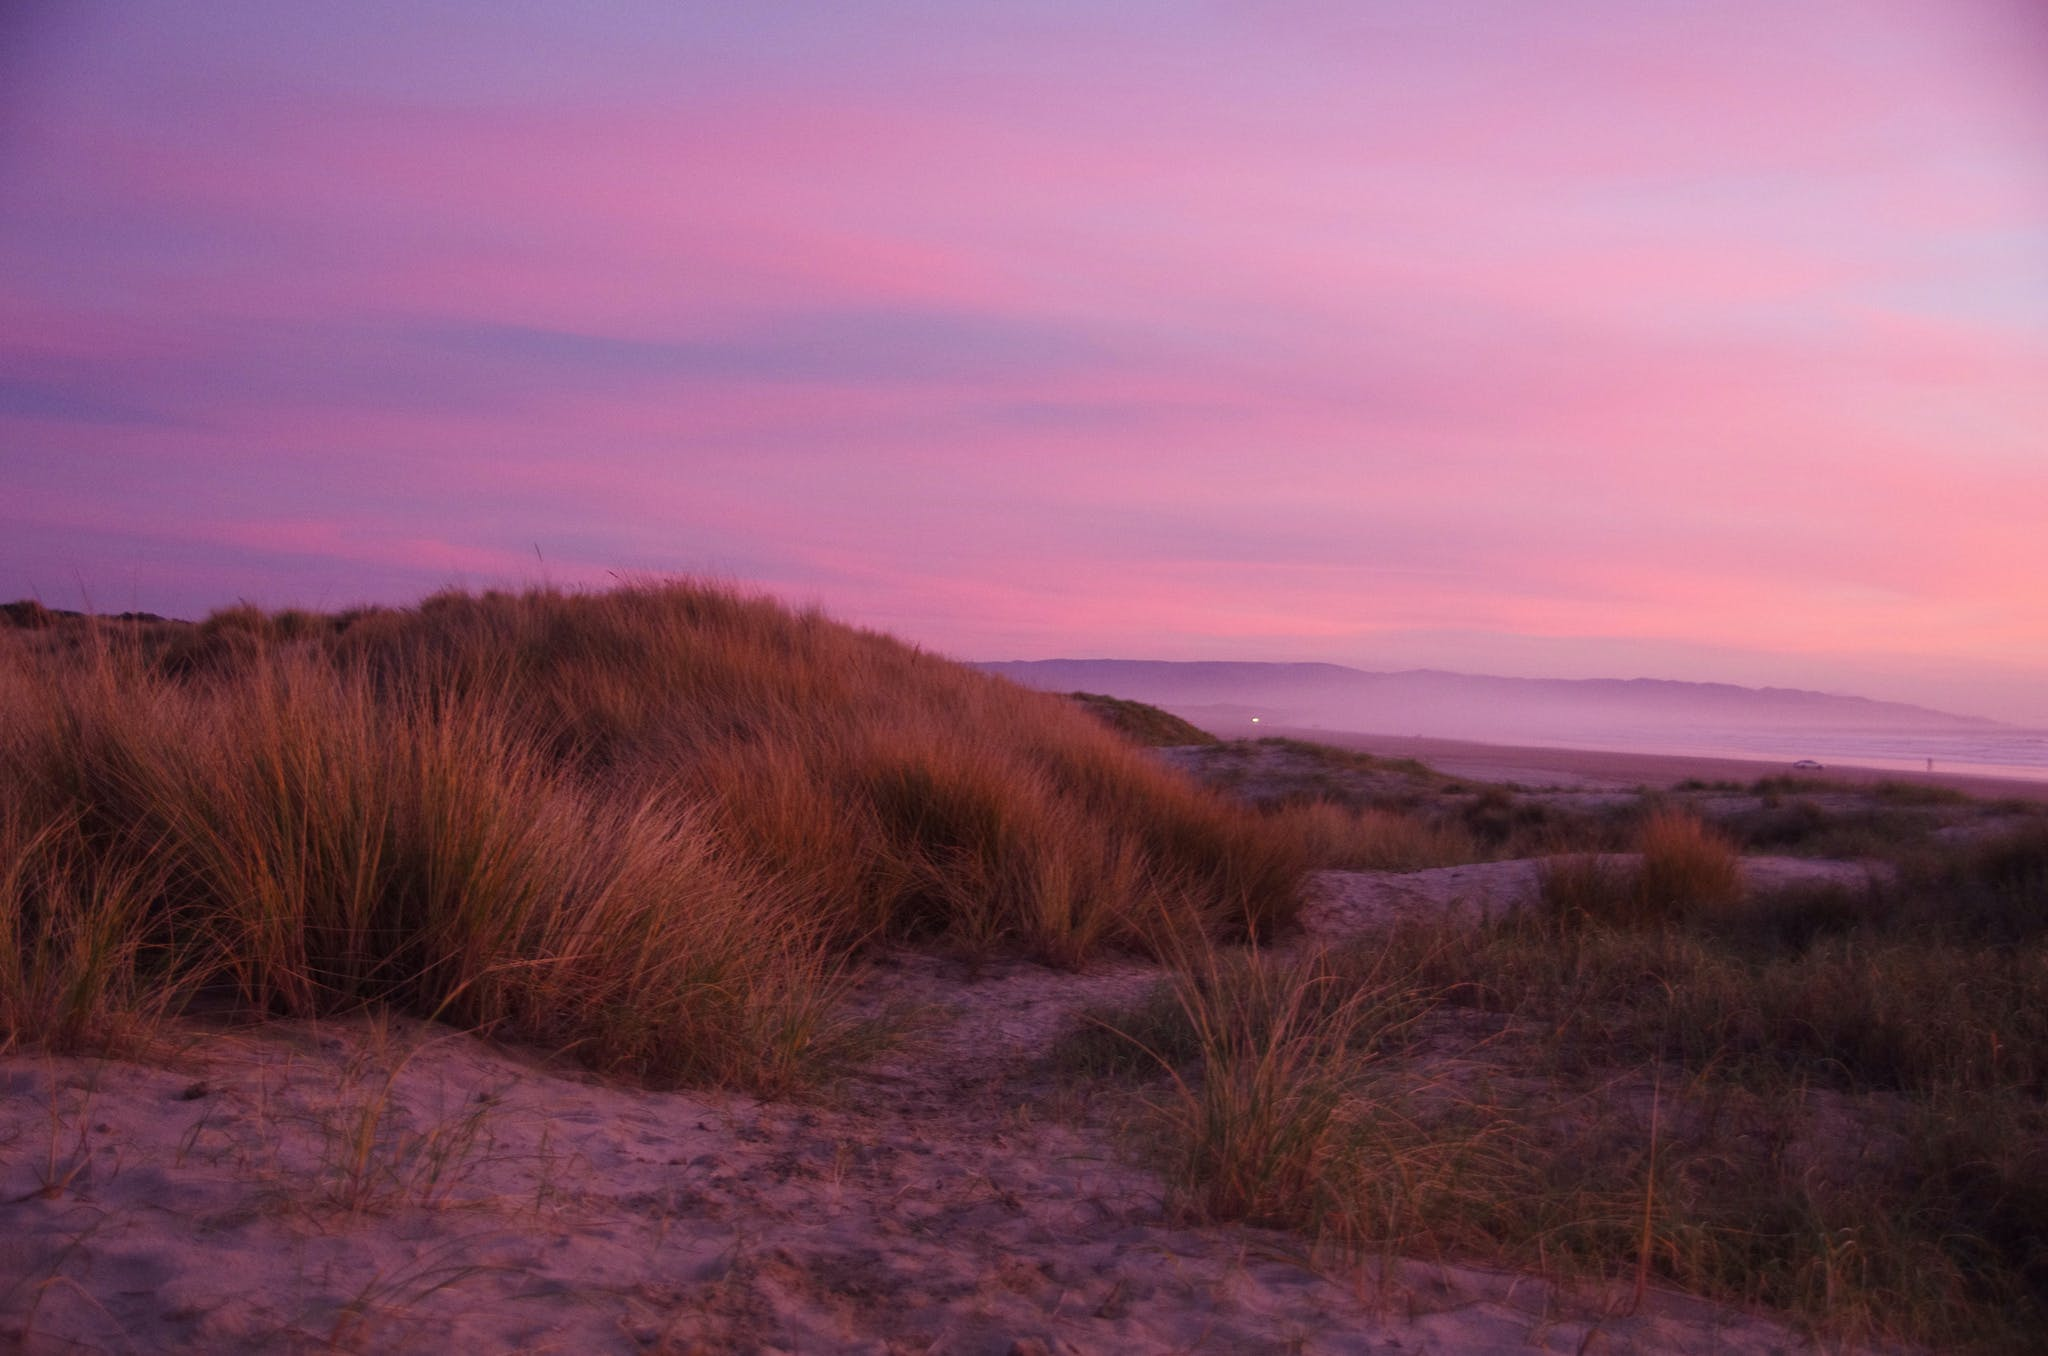 sunset making a purple sky over the dunes of pismo beach